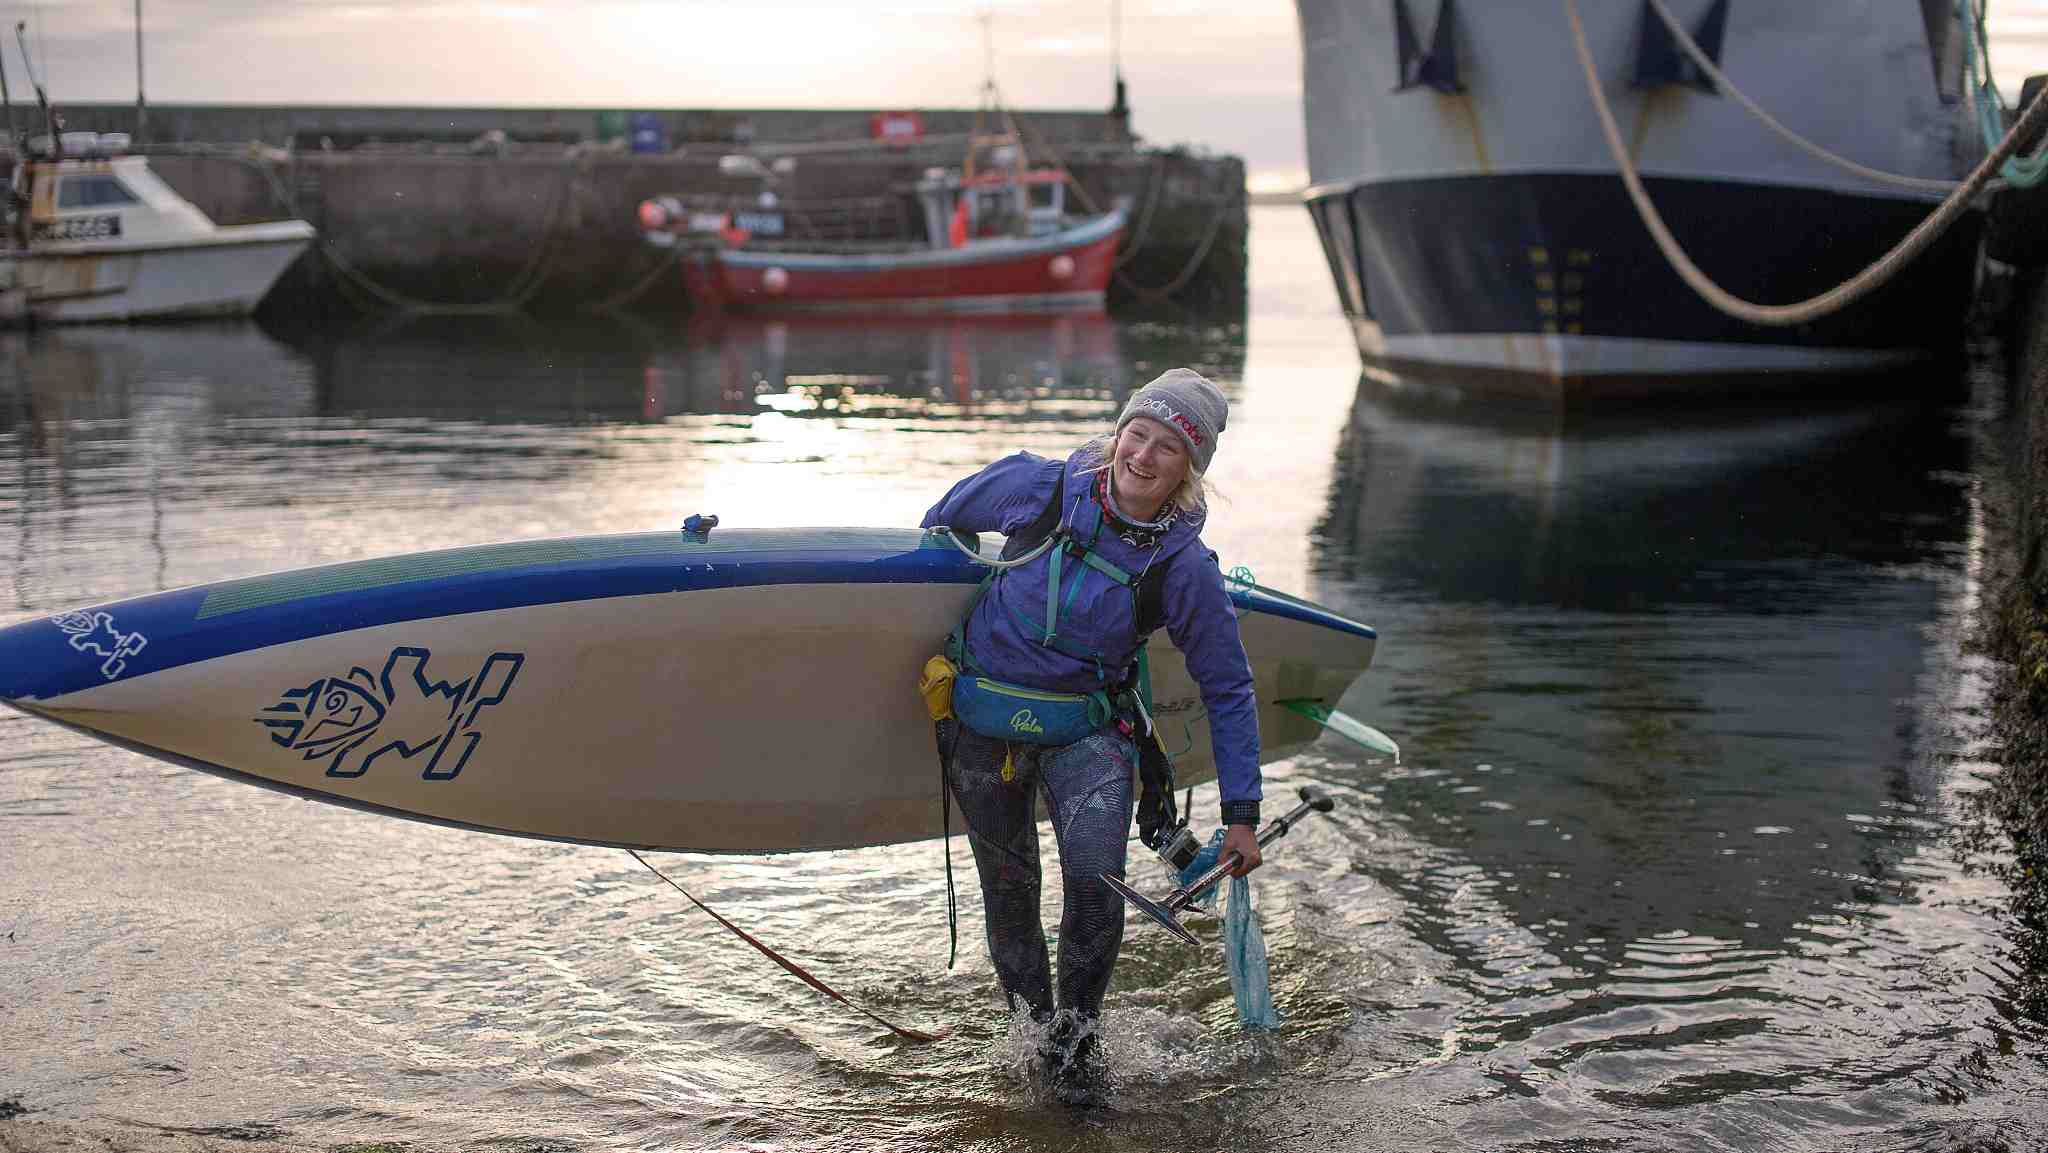 Young women travels 1,000 miles to raise awareness about protecting the ocean.